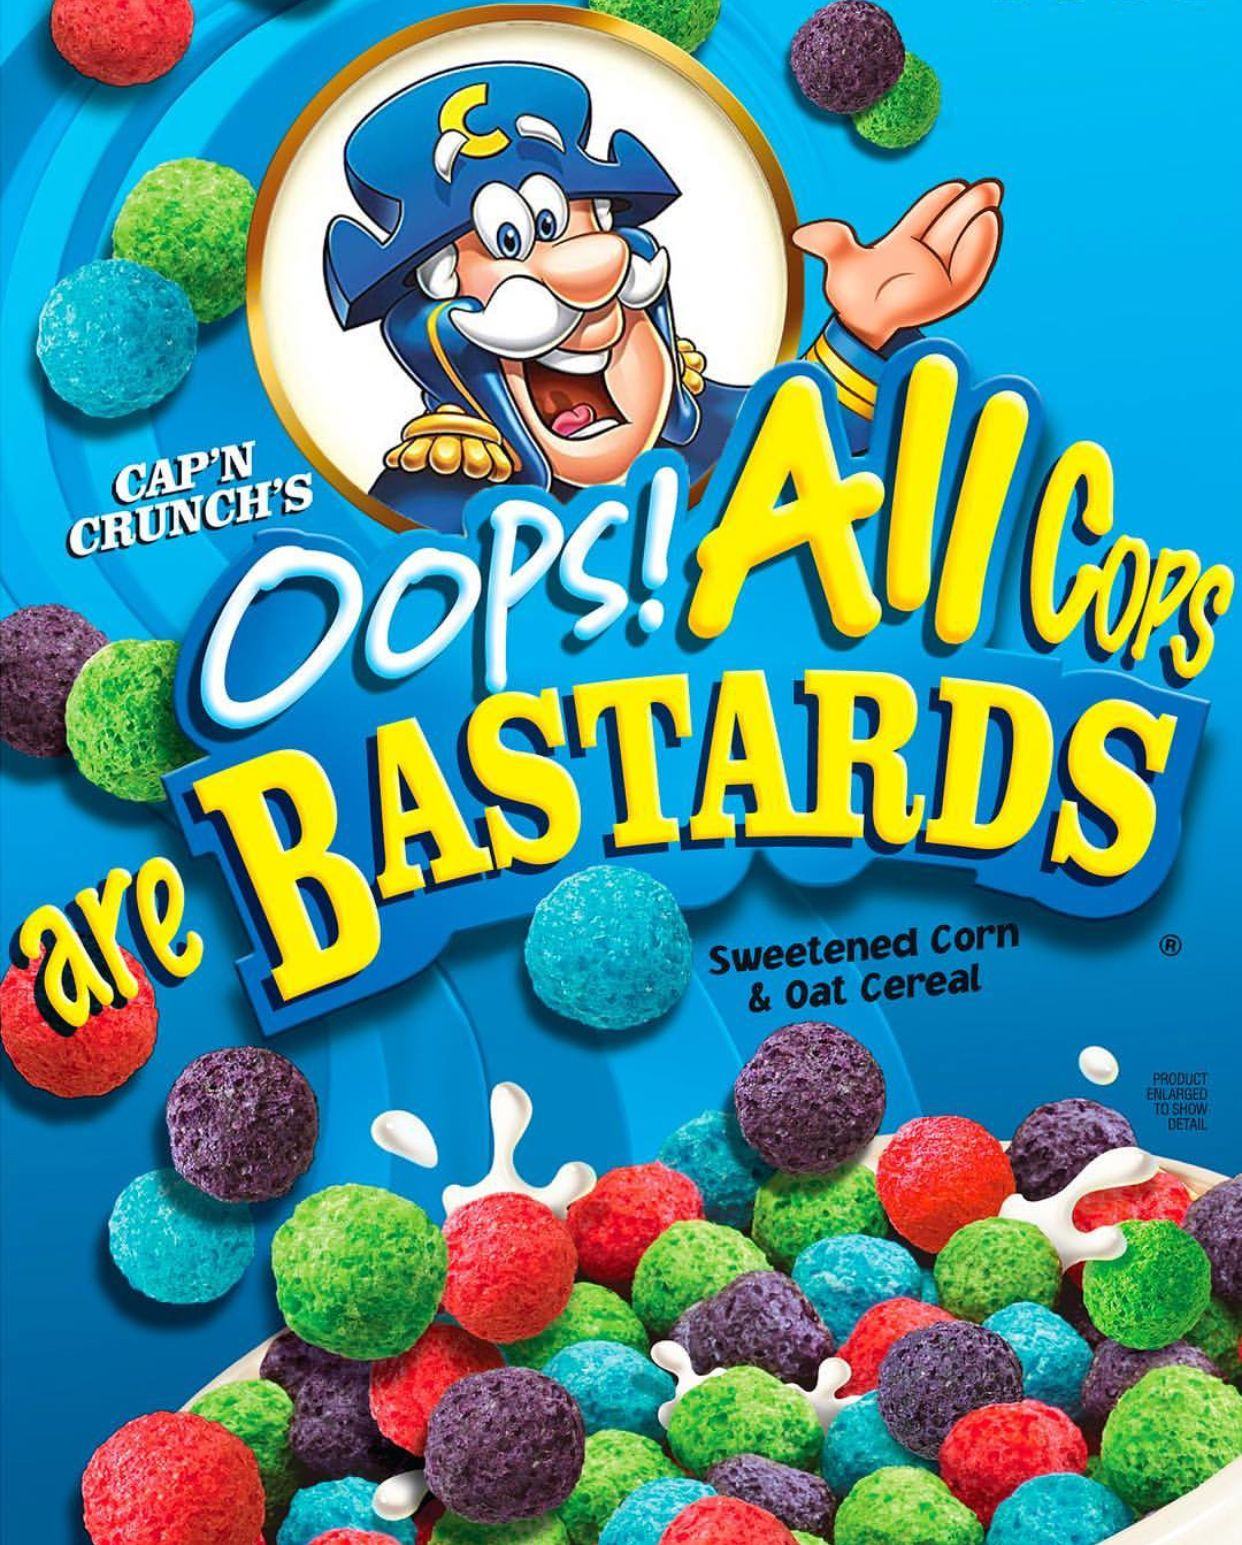 Pin By Wasp On Memes All Berries Berry Cereal Capn Crunch All berries box of cap'n crunch, edited in a way that refers to the number of fe characters in ultimate. all berries berry cereal capn crunch